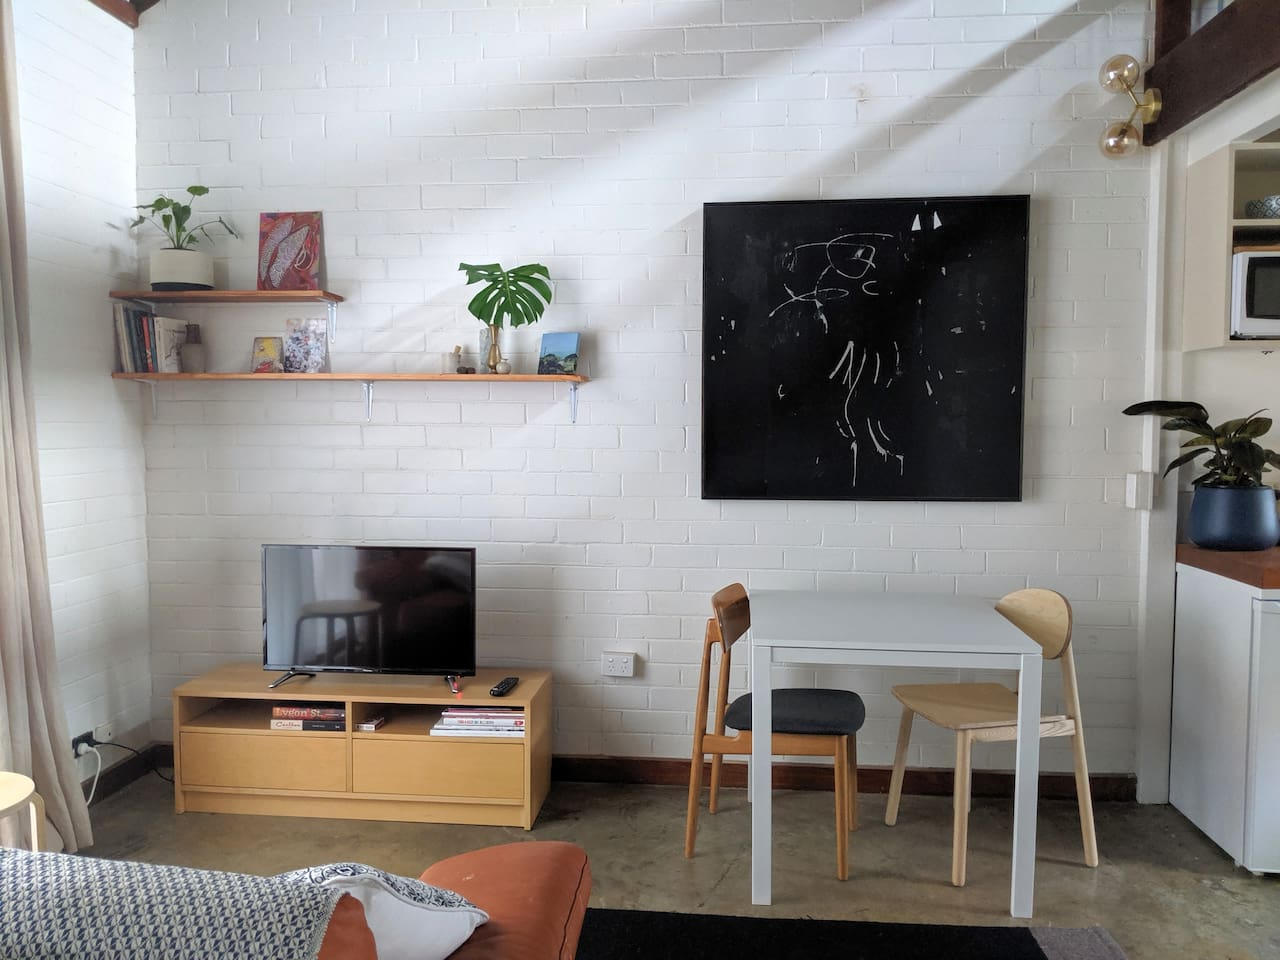 Dining and lounge area featuring artwork by Kathryne Honey, Kate Tucker and Janet De Wagt. Smart TV includes Netflix.